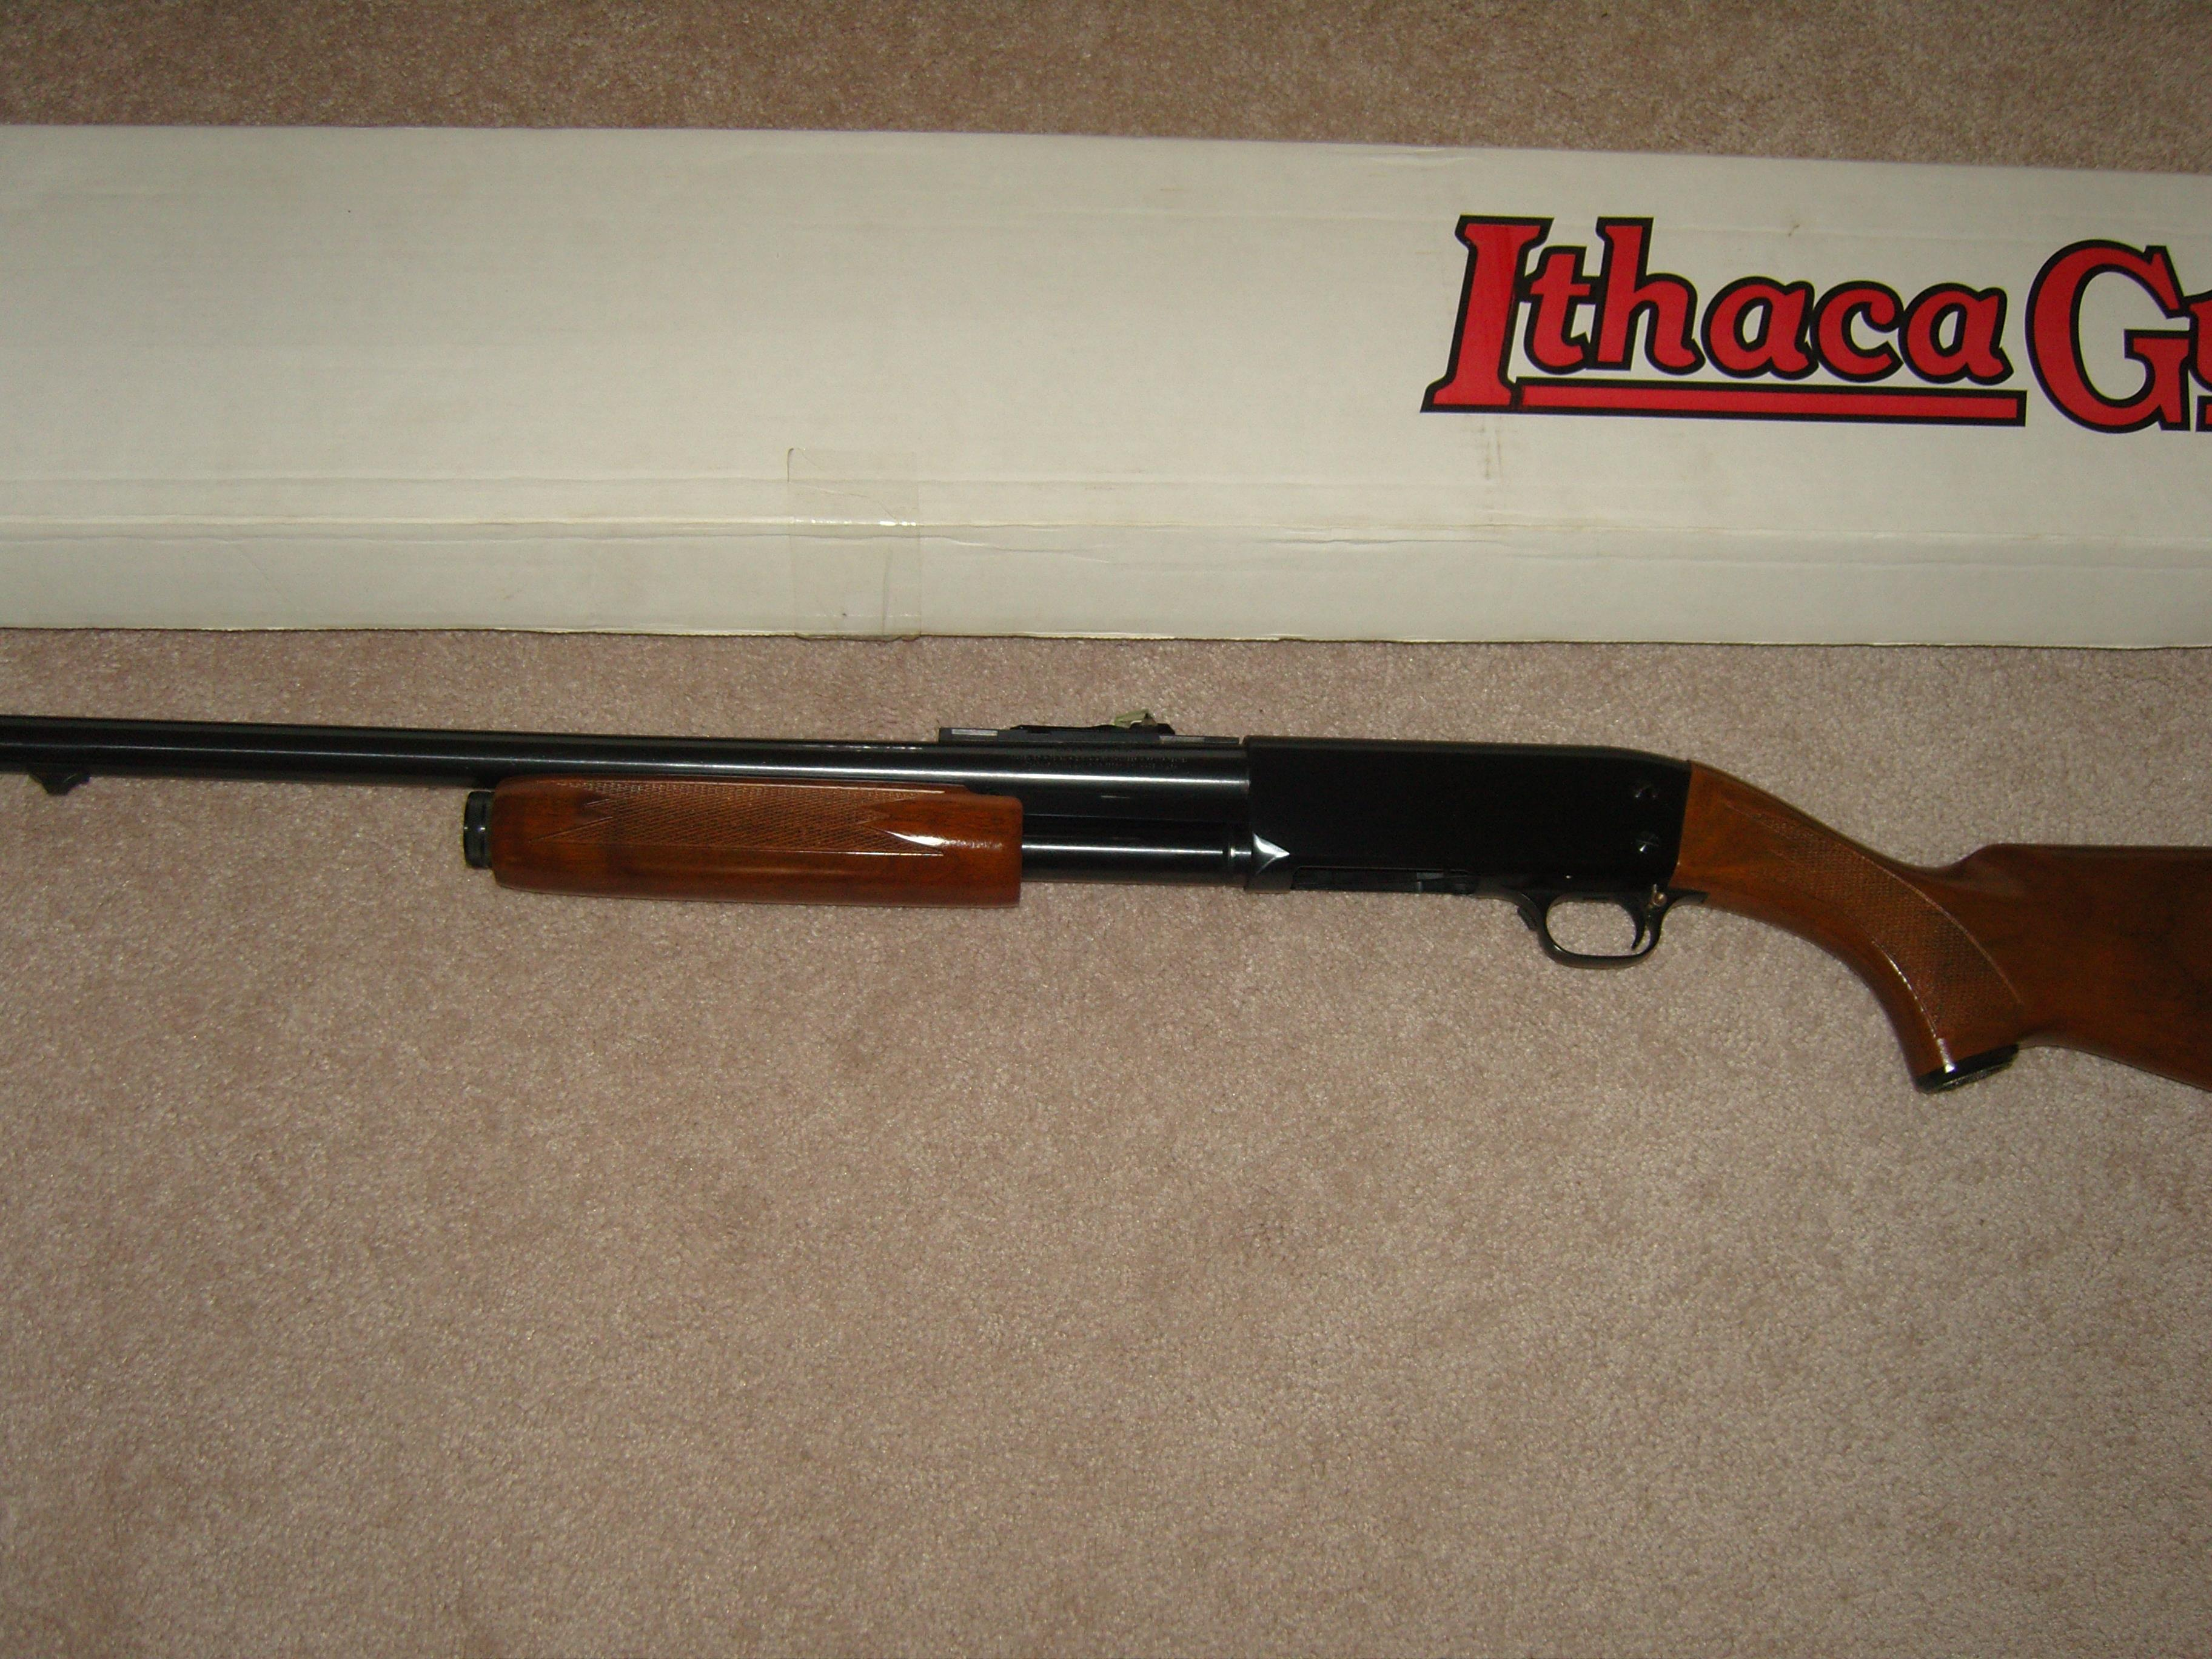 Ithaca 37 Deerslayer Deluxe  Guns > Shotguns > Ithaca Shotguns > Pump